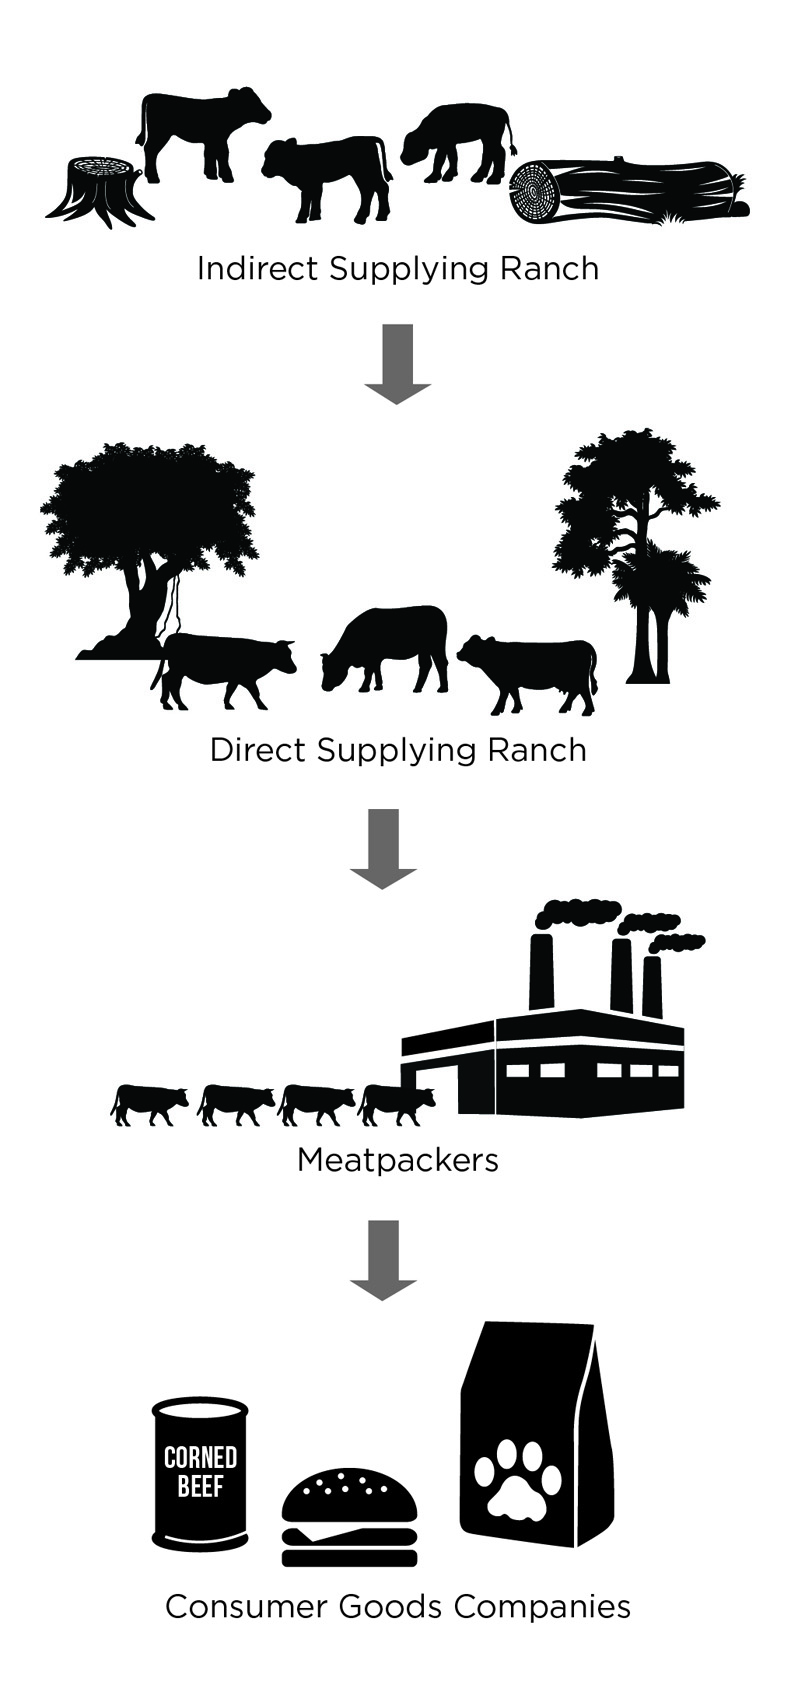 This is one example of how beef associated with deforestation enters the supply chain—through a meatpacker's indirect supplying ranches. Indirect supplying ranches are often not monitored for deforestation. However, many meatpackers do not monitor their direct supplying ranches for deforestation either